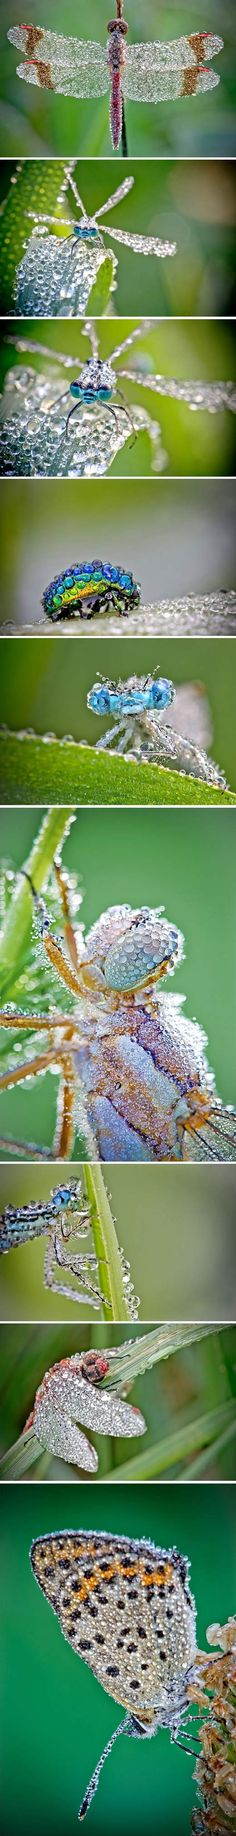 Insects with water drops